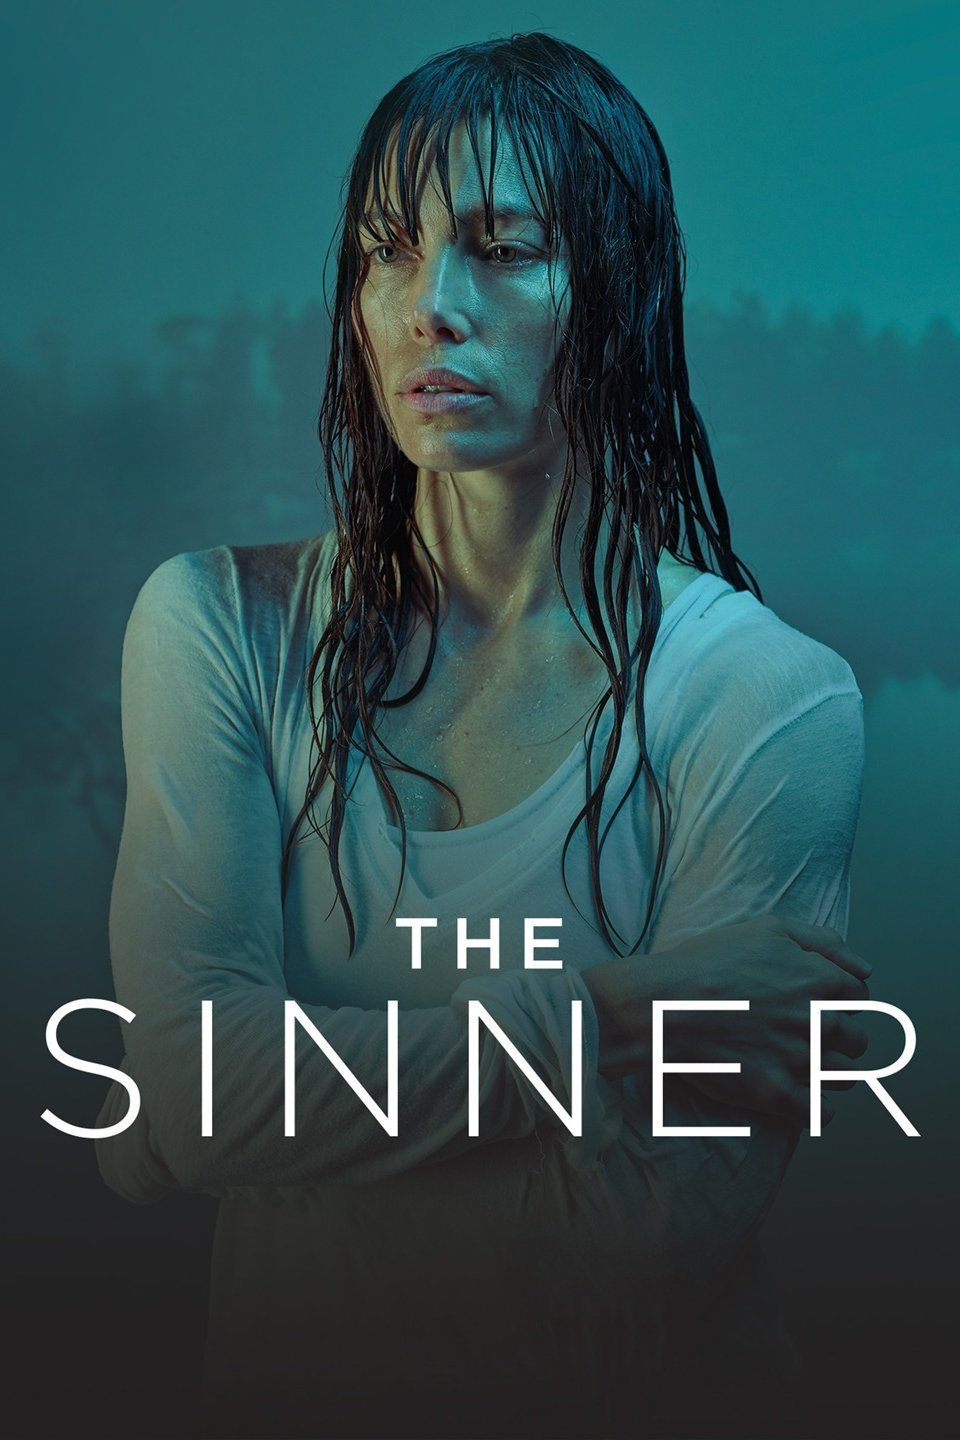 Trilha Sonora de Séries na Netflix: The Sinner